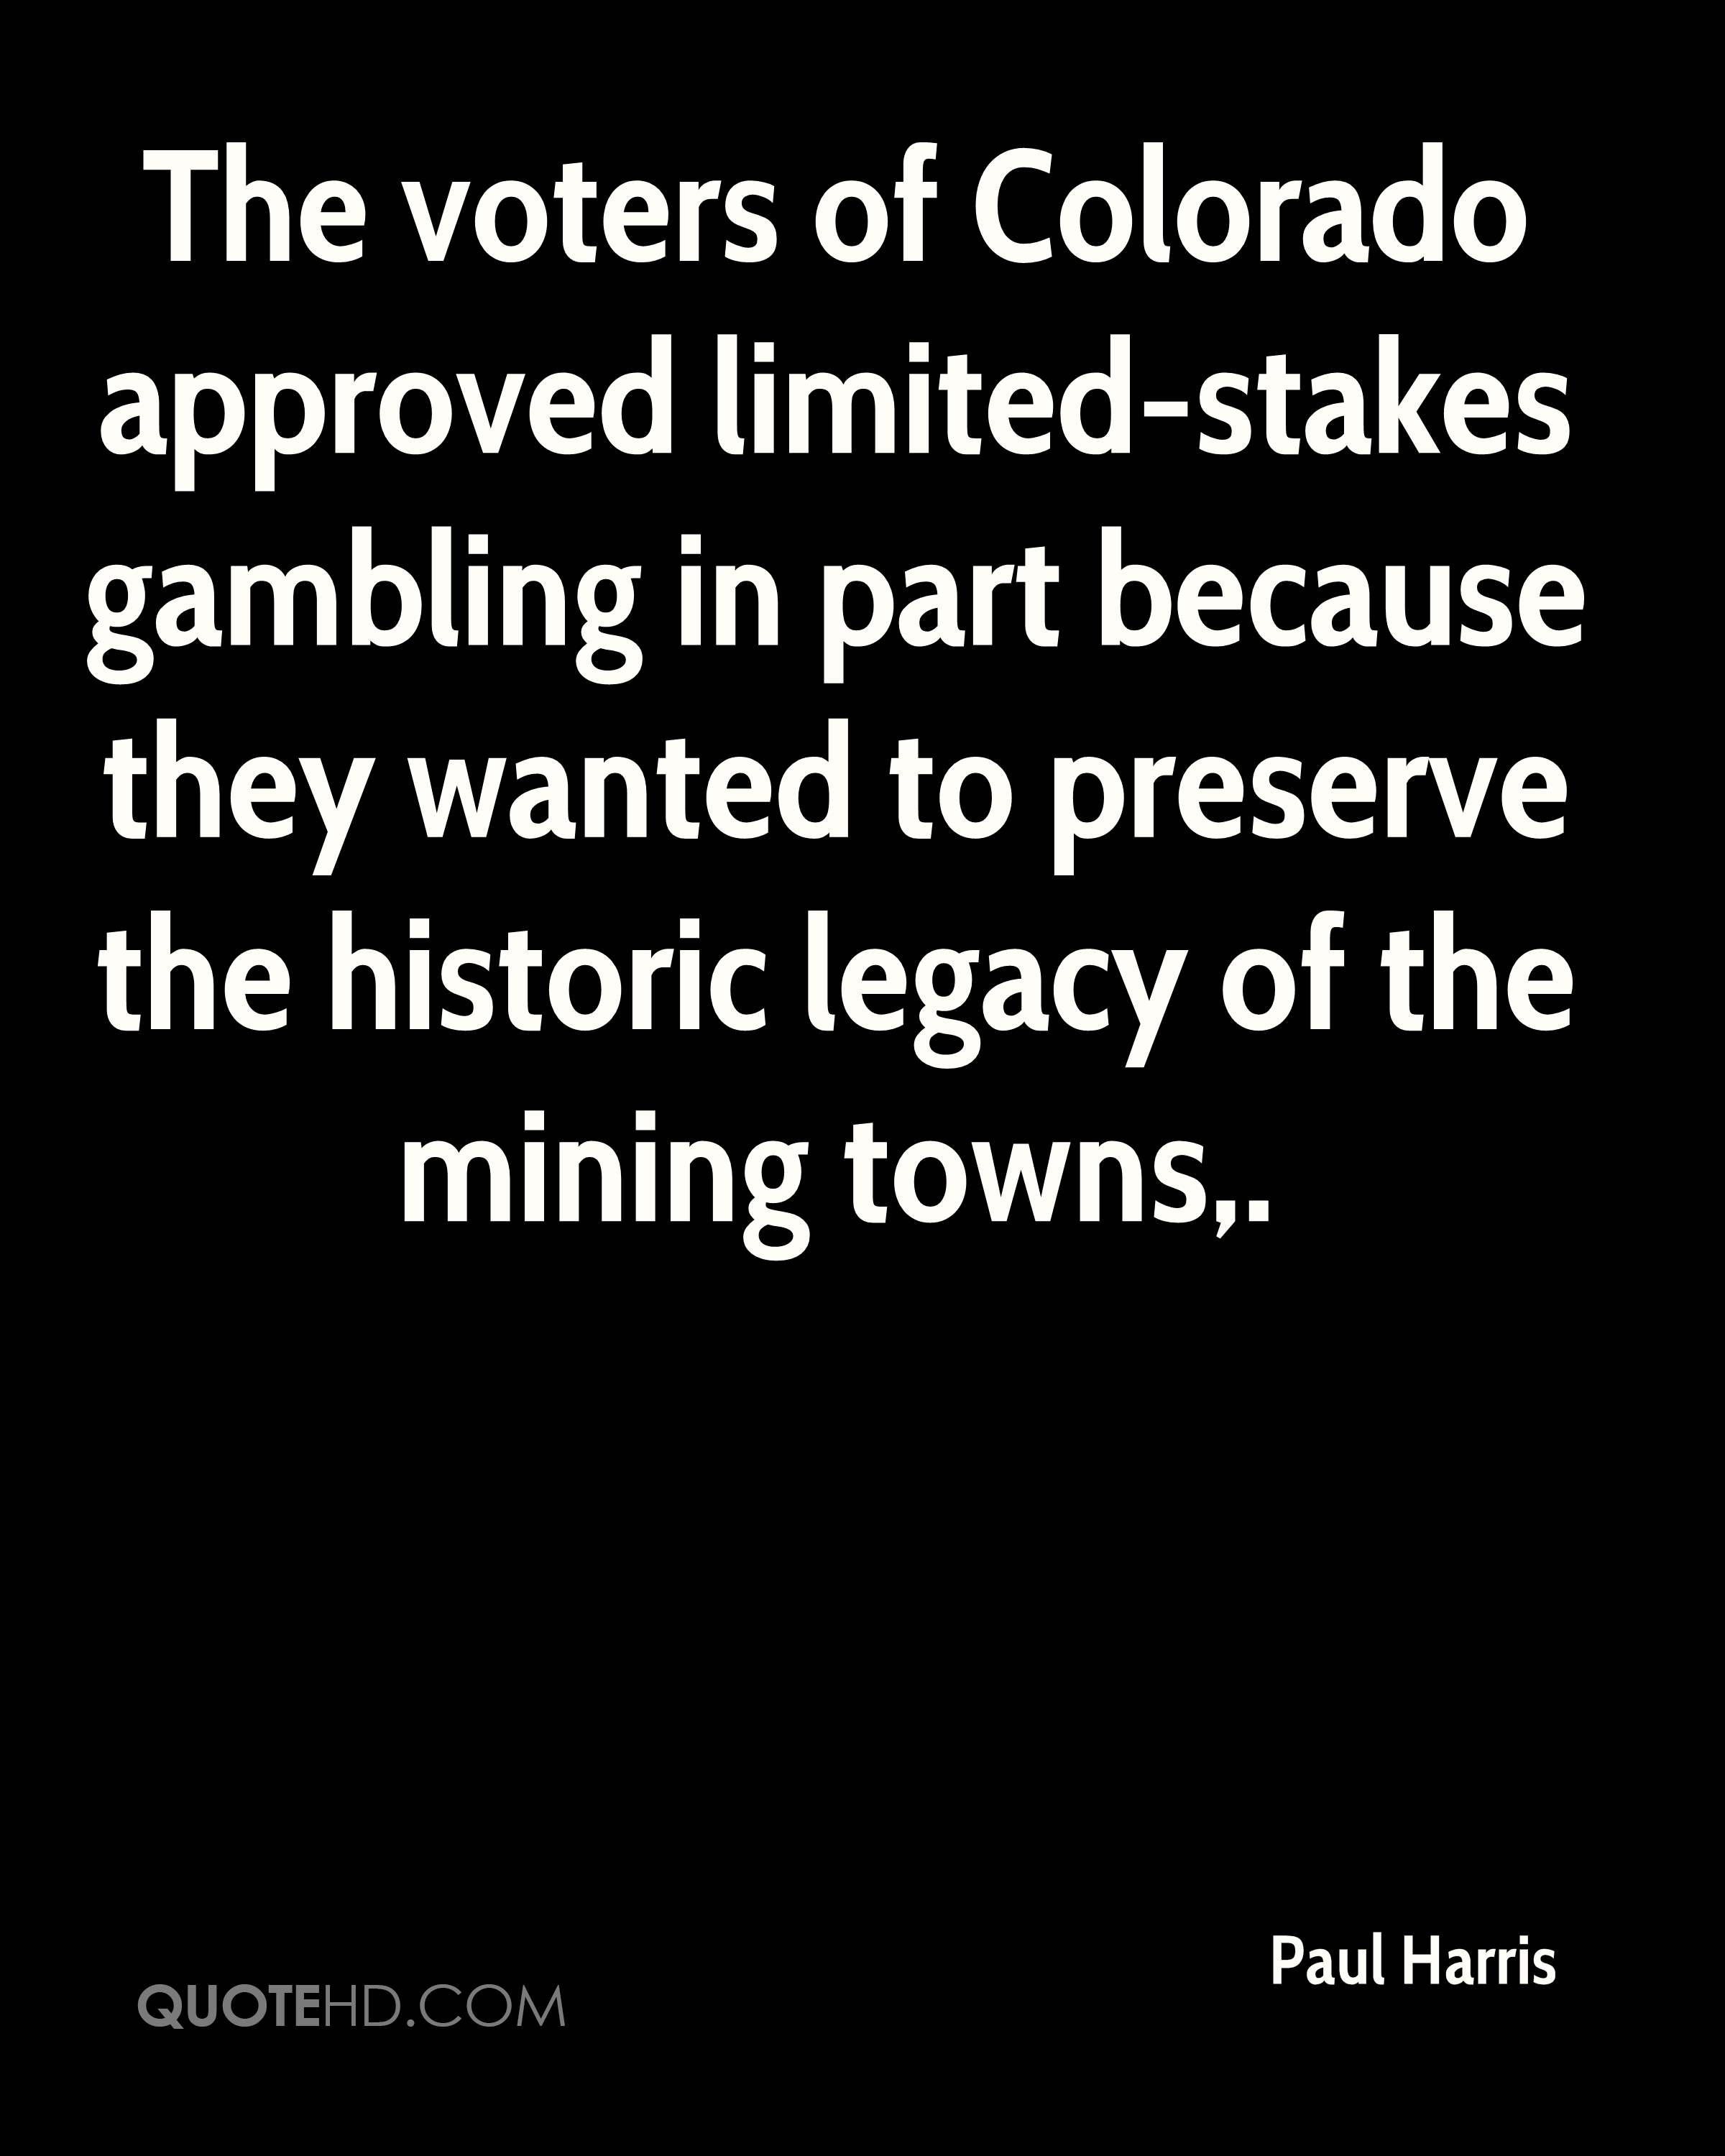 The voters of Colorado approved limited-stakes gambling in part because they wanted to preserve the historic legacy of the mining towns.